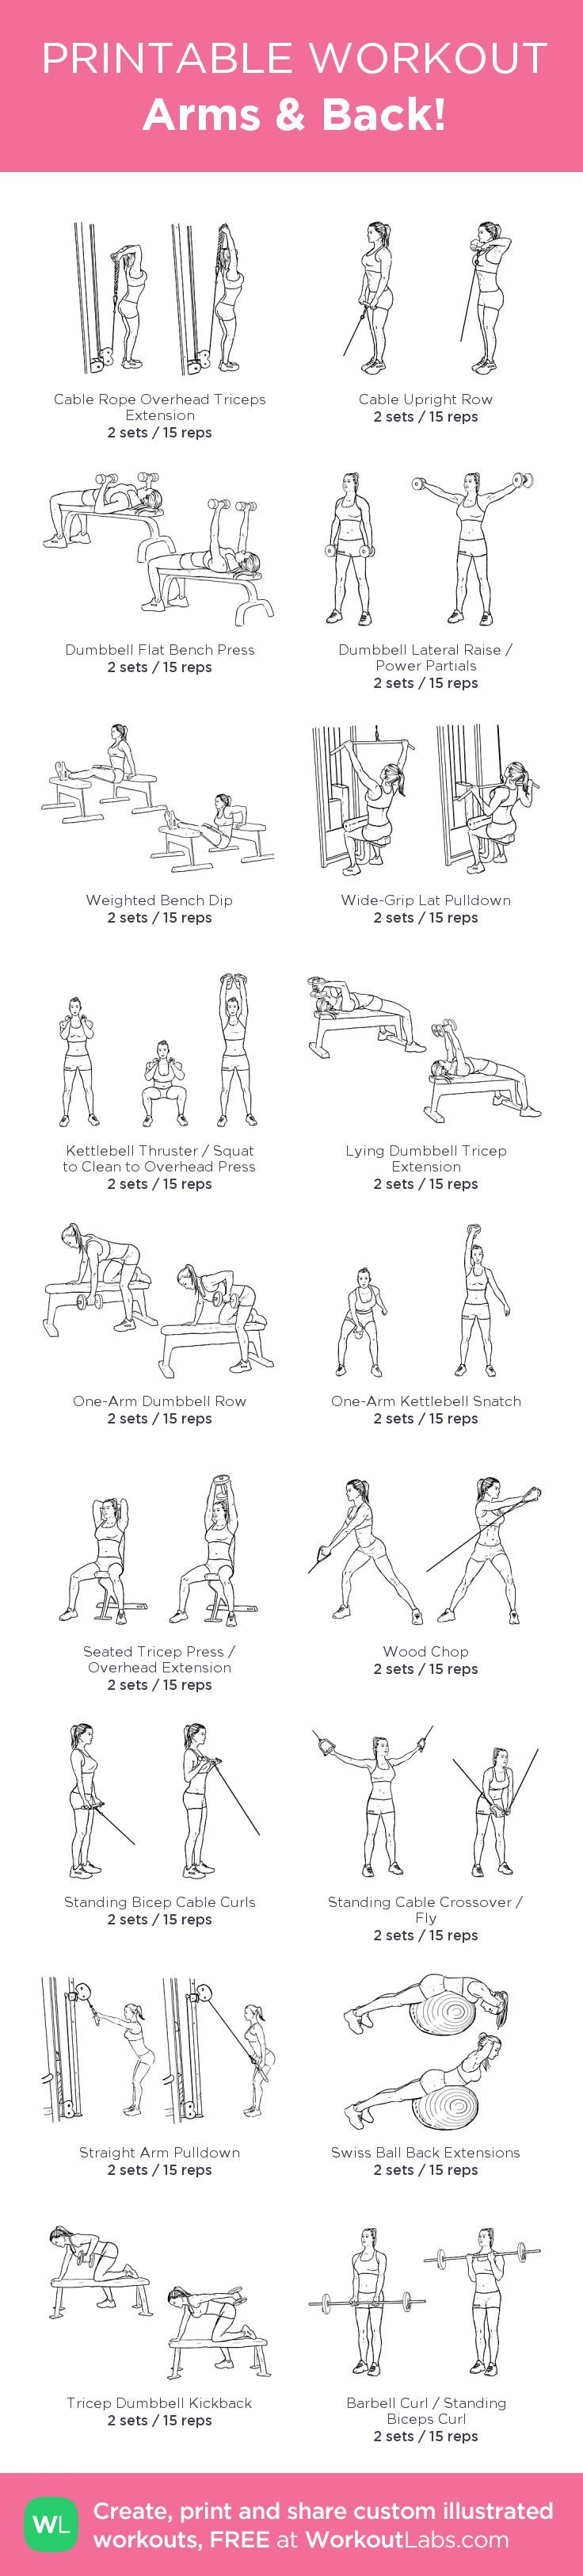 Arms & Back – my custom workout created at